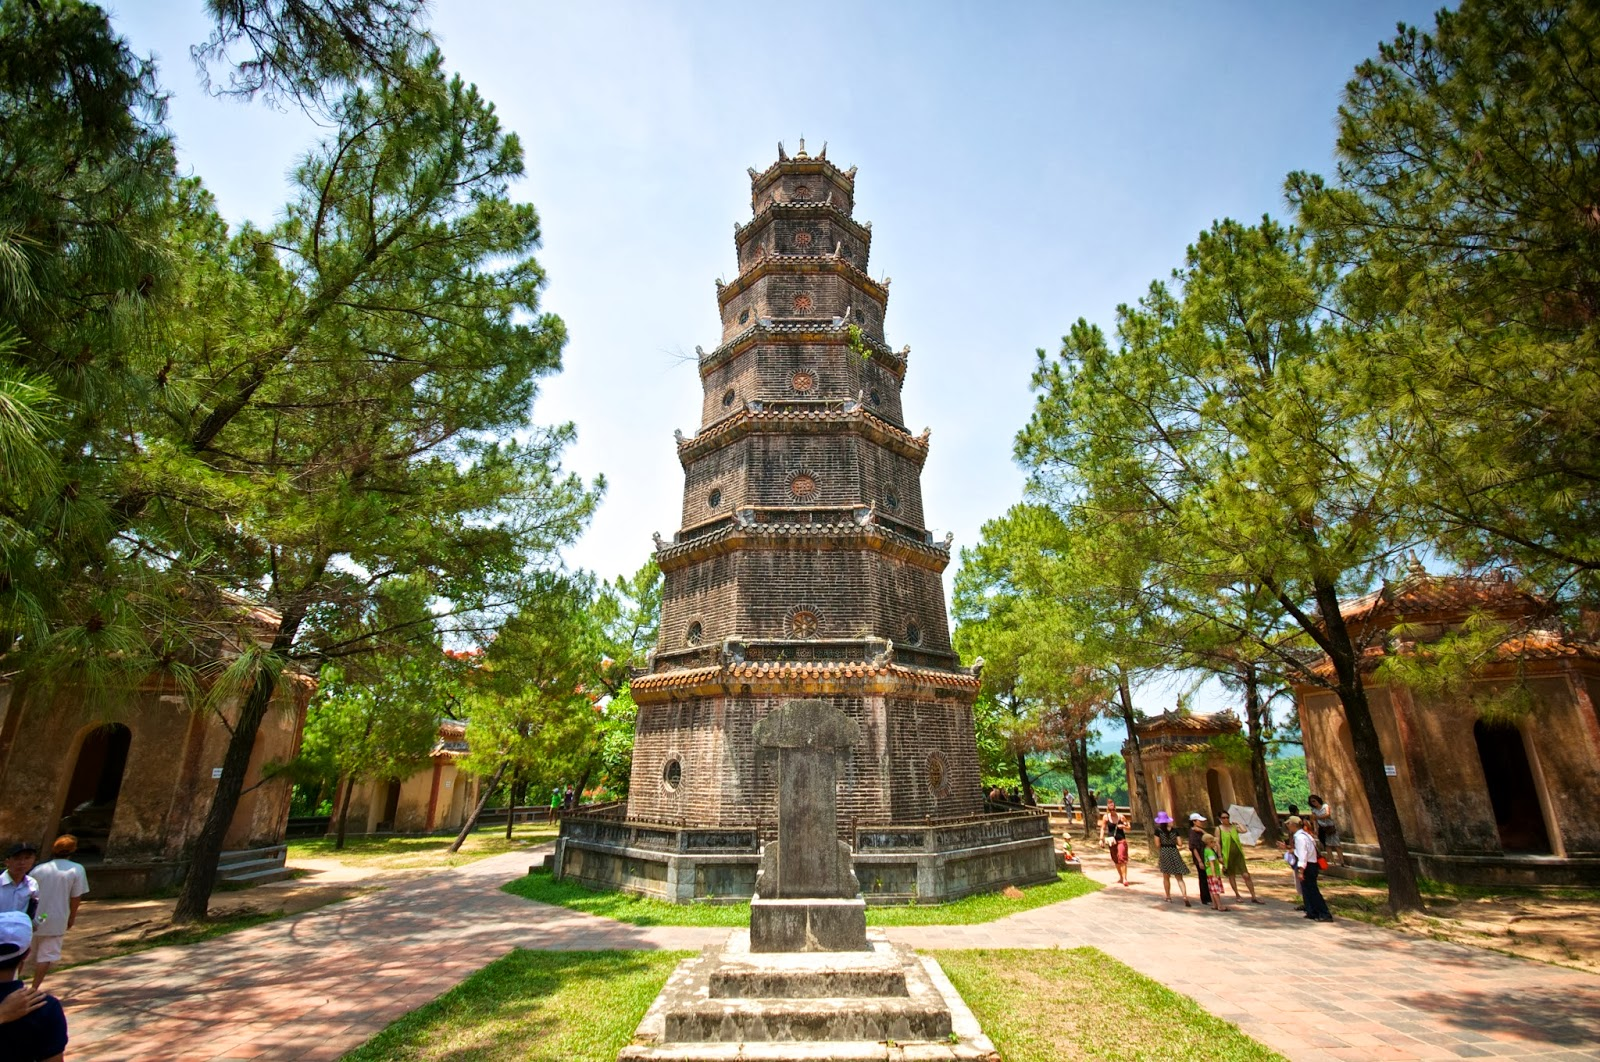 Phuoc Duyen Tower in Thien Mu Pagoda